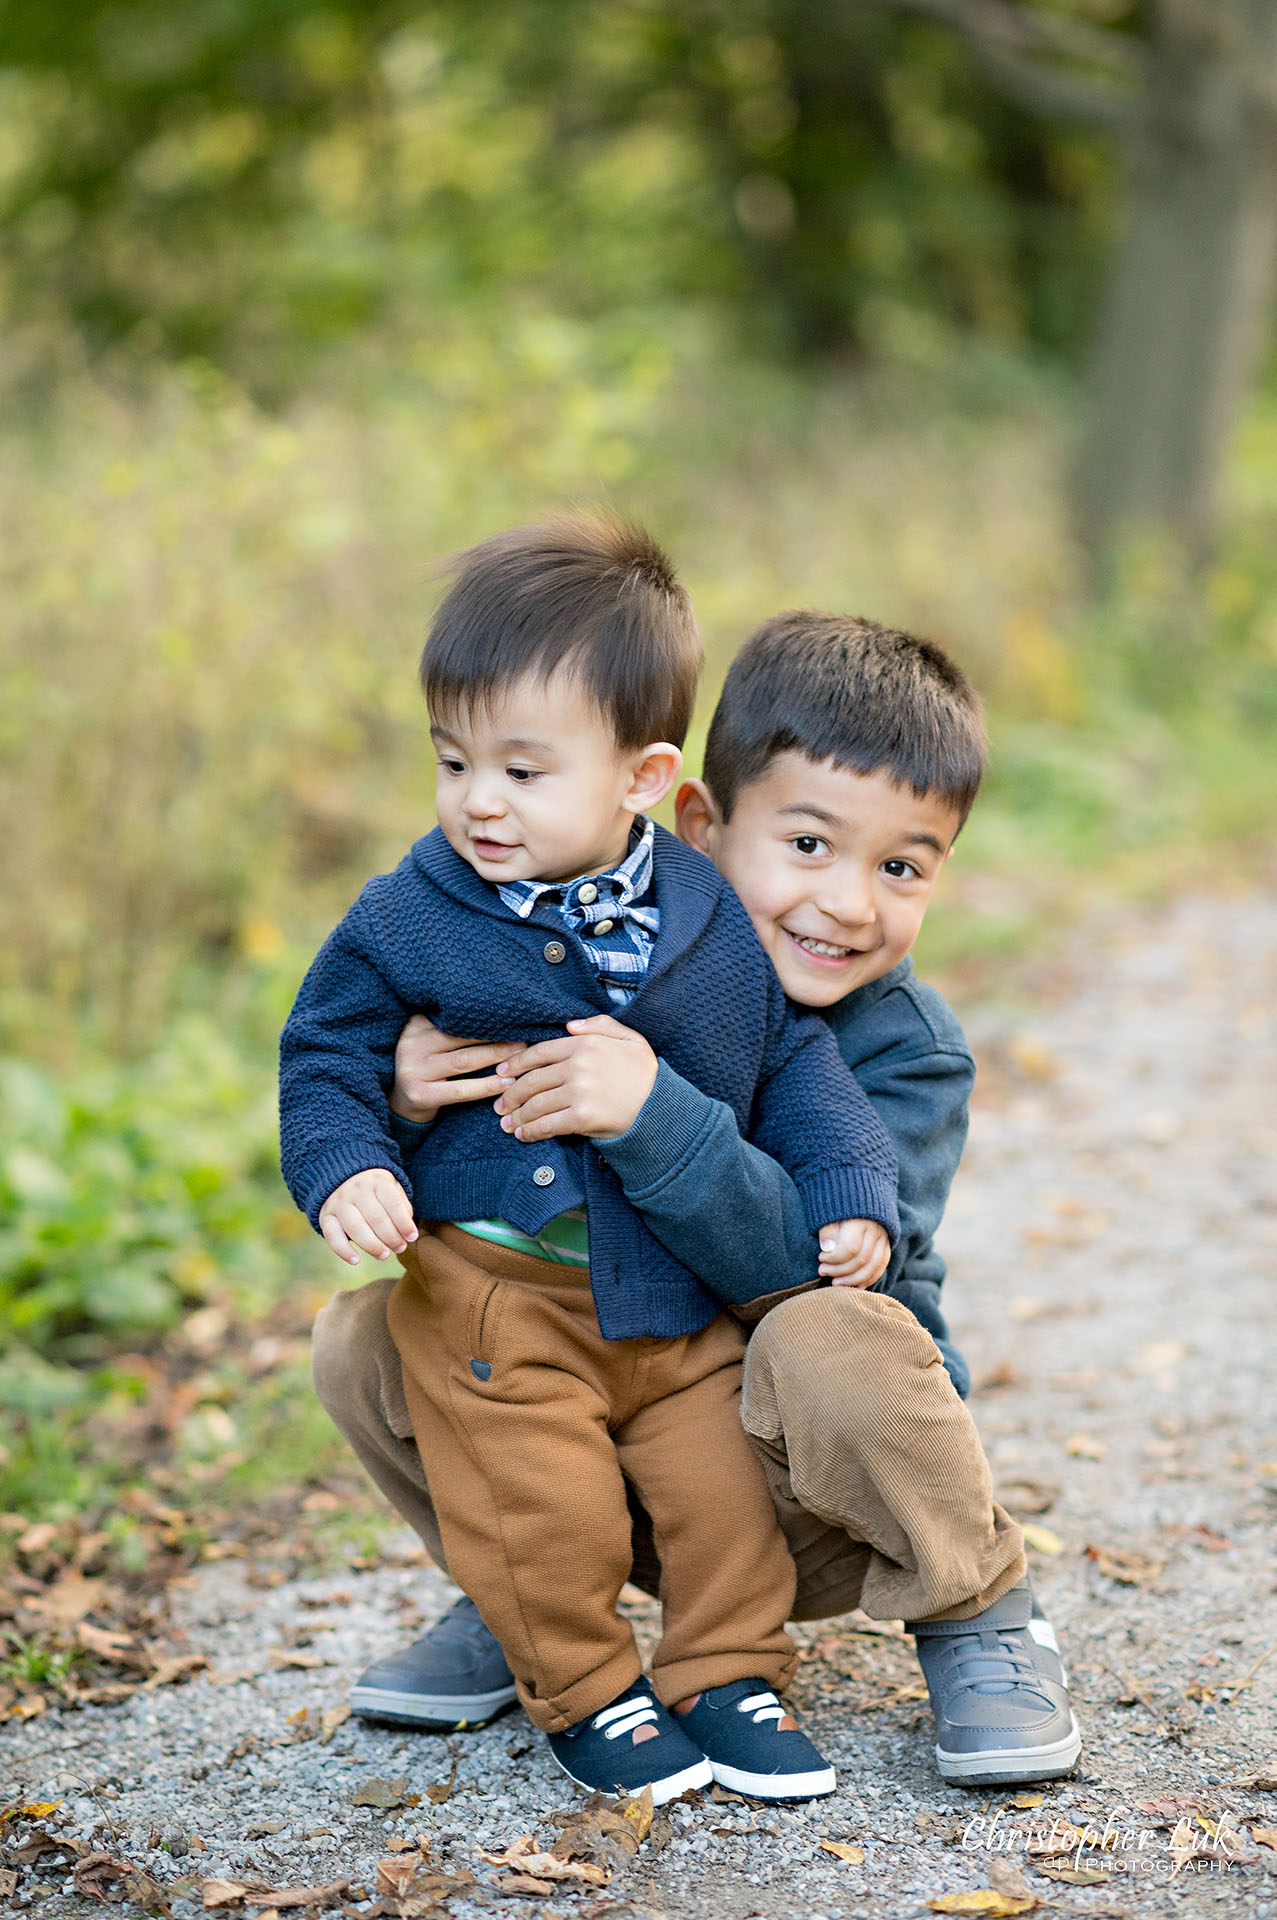 Christopher Luk Family Photographer Toronto Markham Unionville Autumn Fall Leaves Natural Candid Photojournalistic Sons Brothers Boys Smile Hug Funny